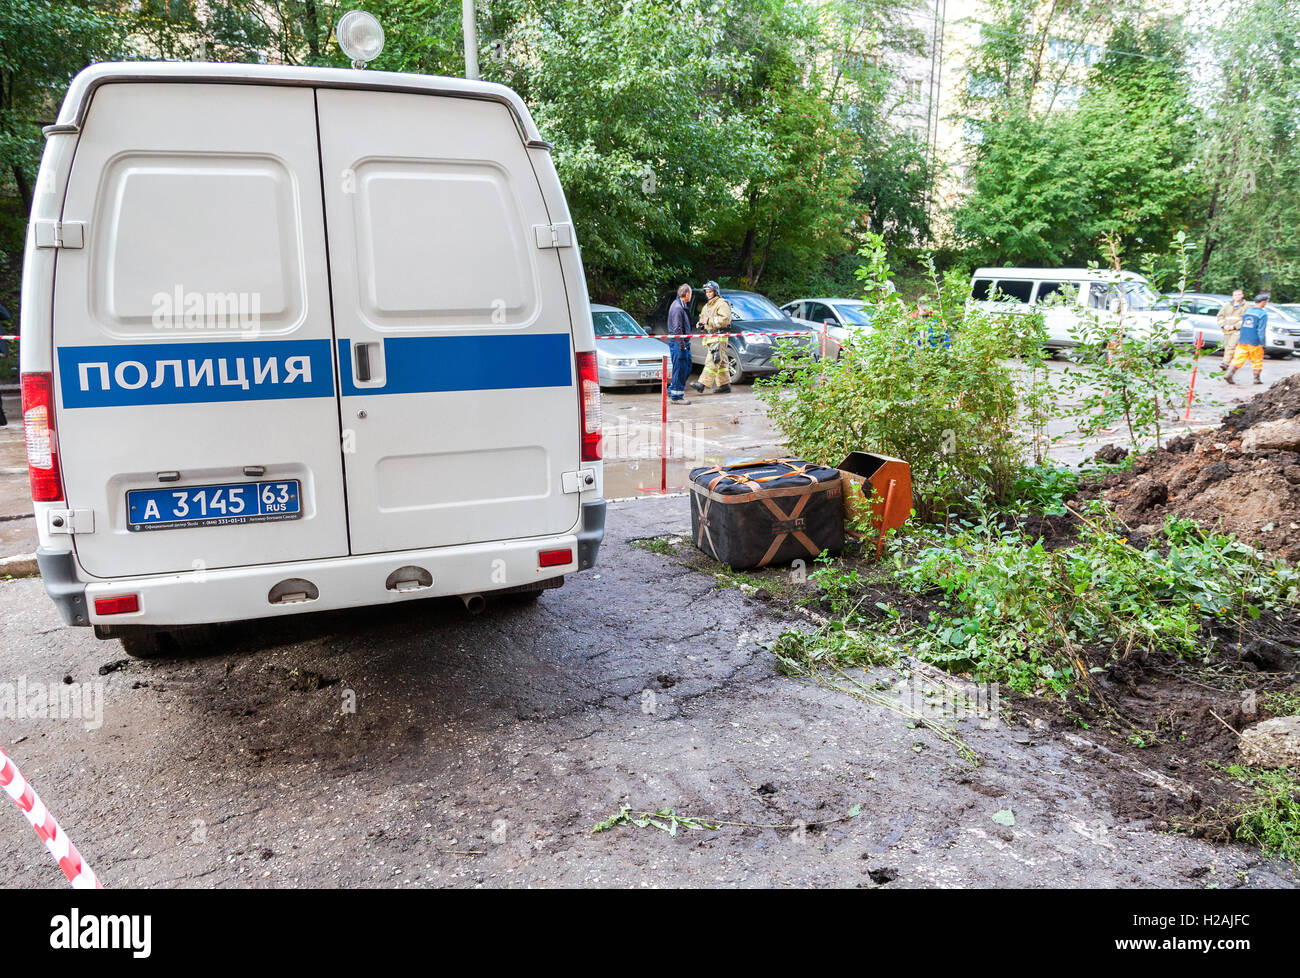 Russian police vehicle and explosion localizer Fountain lies on explosive object - Stock Image